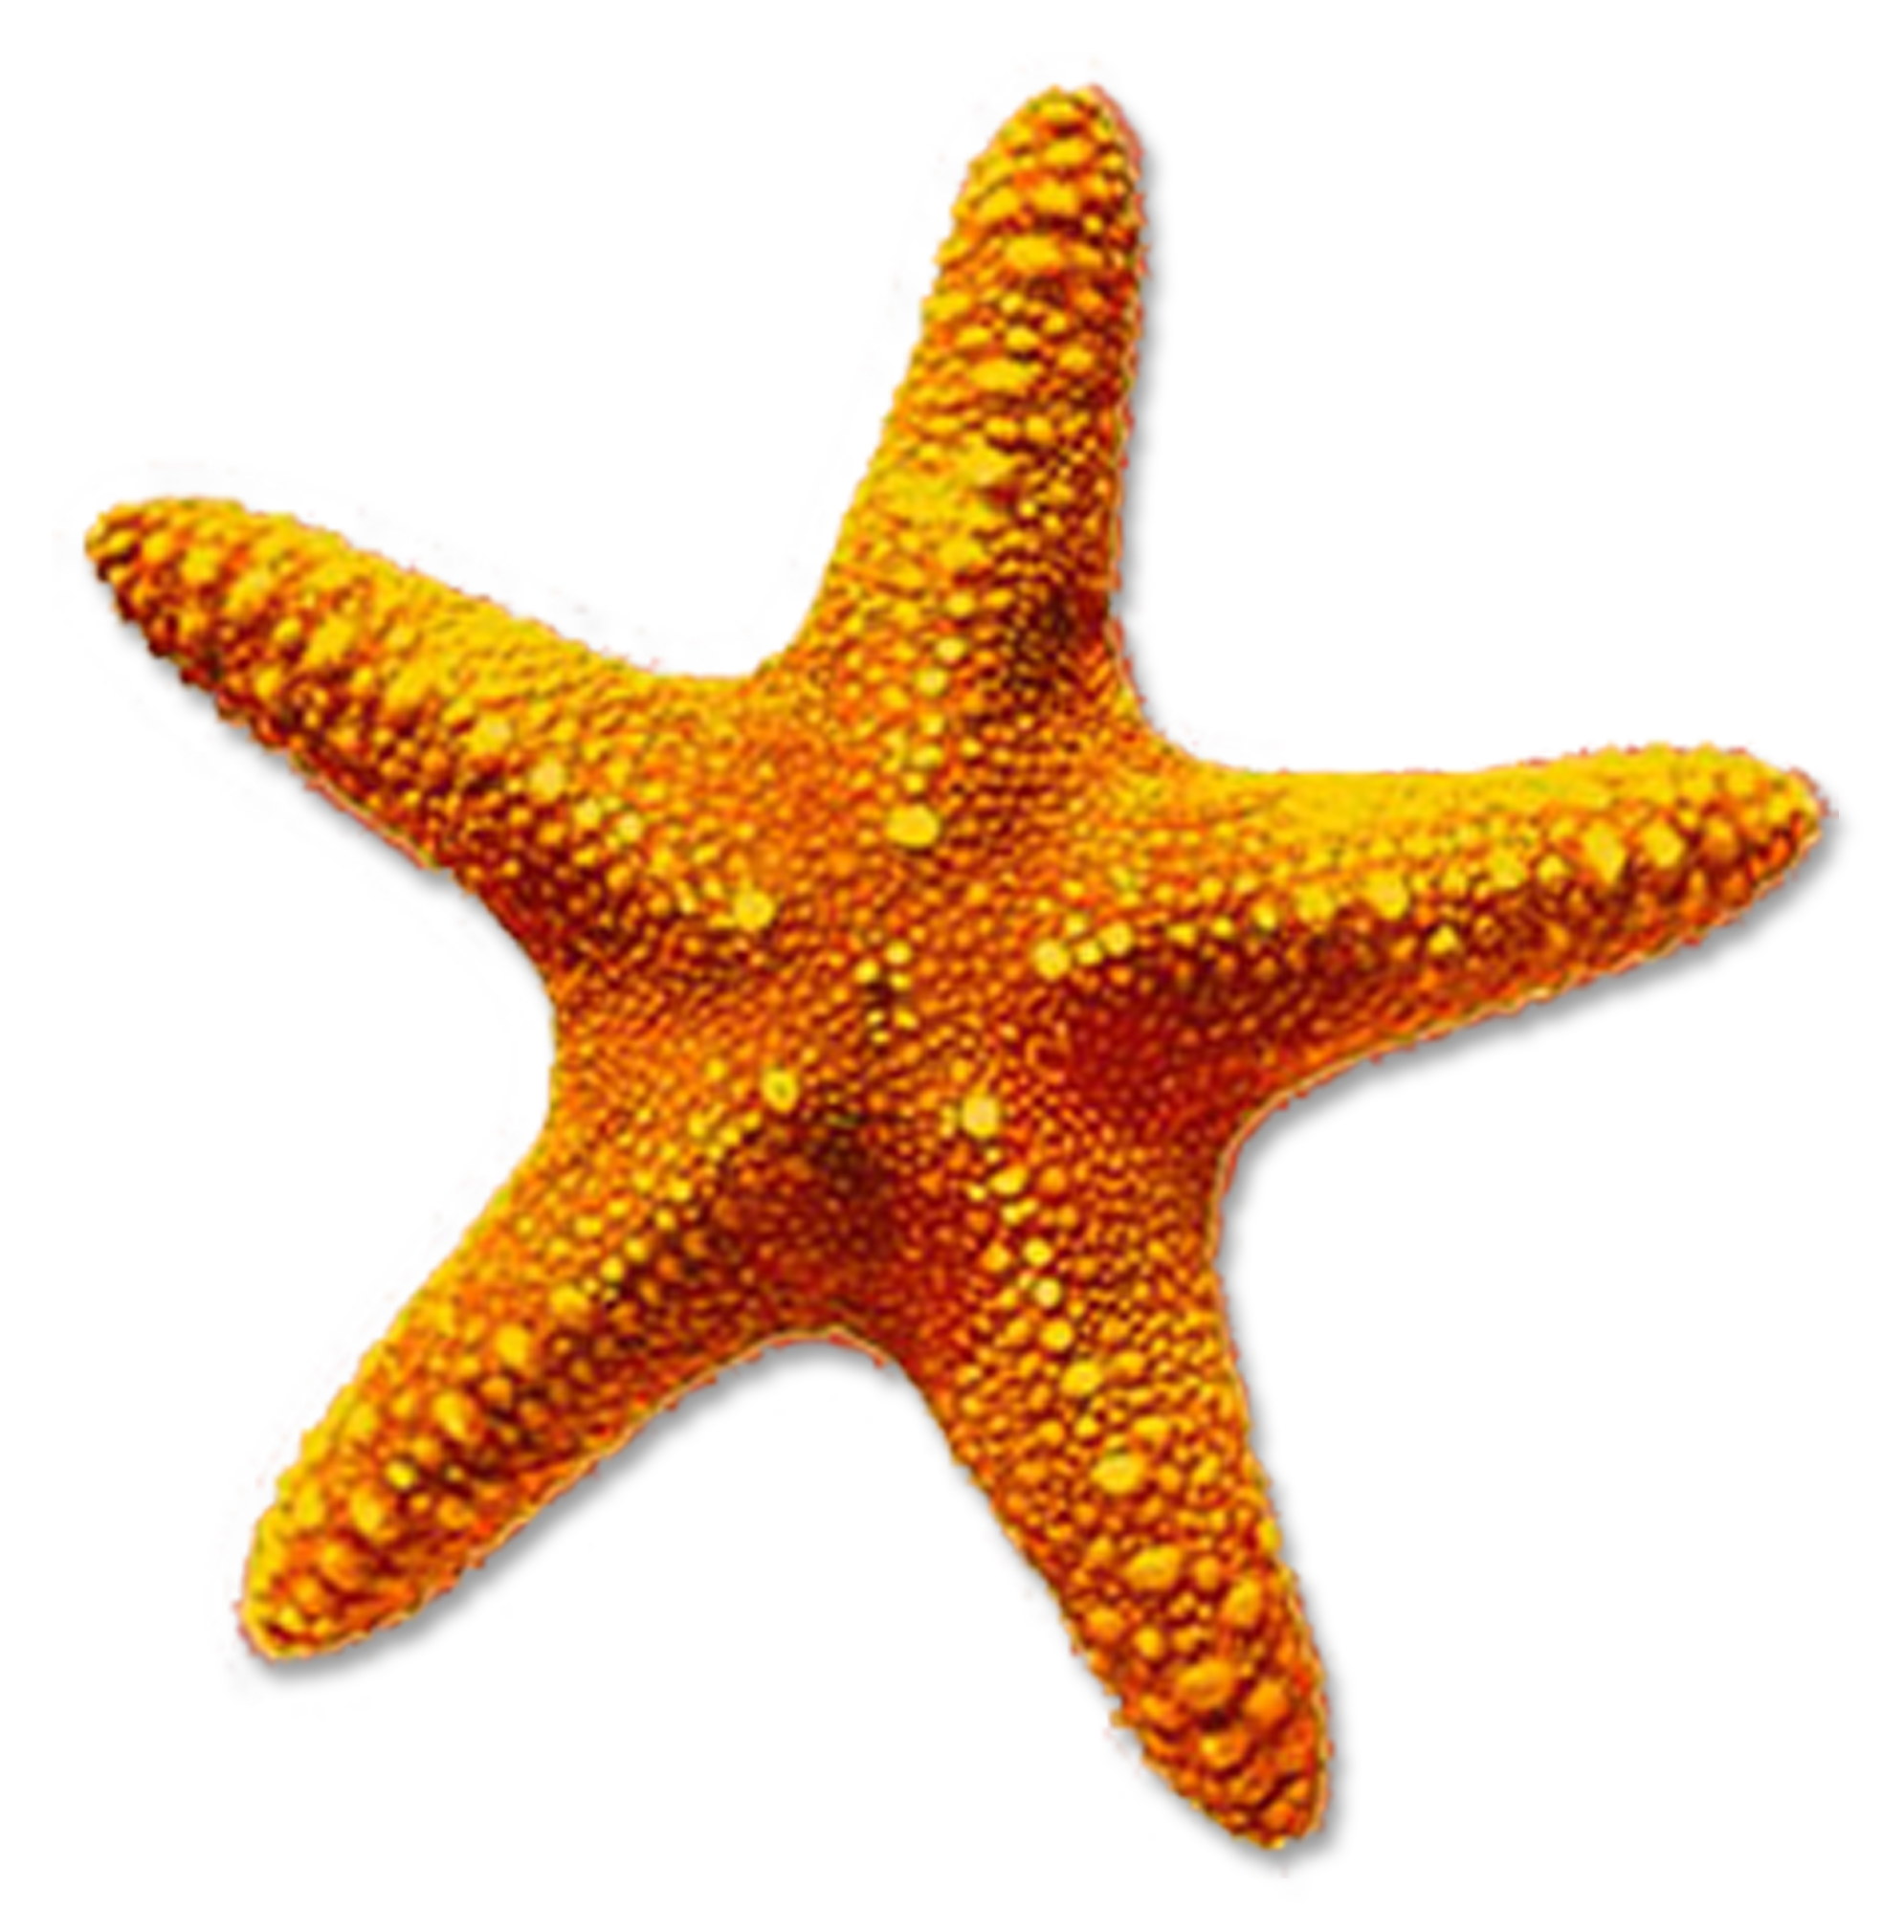 High-quality Starfish Cliparts For Free! image #19850